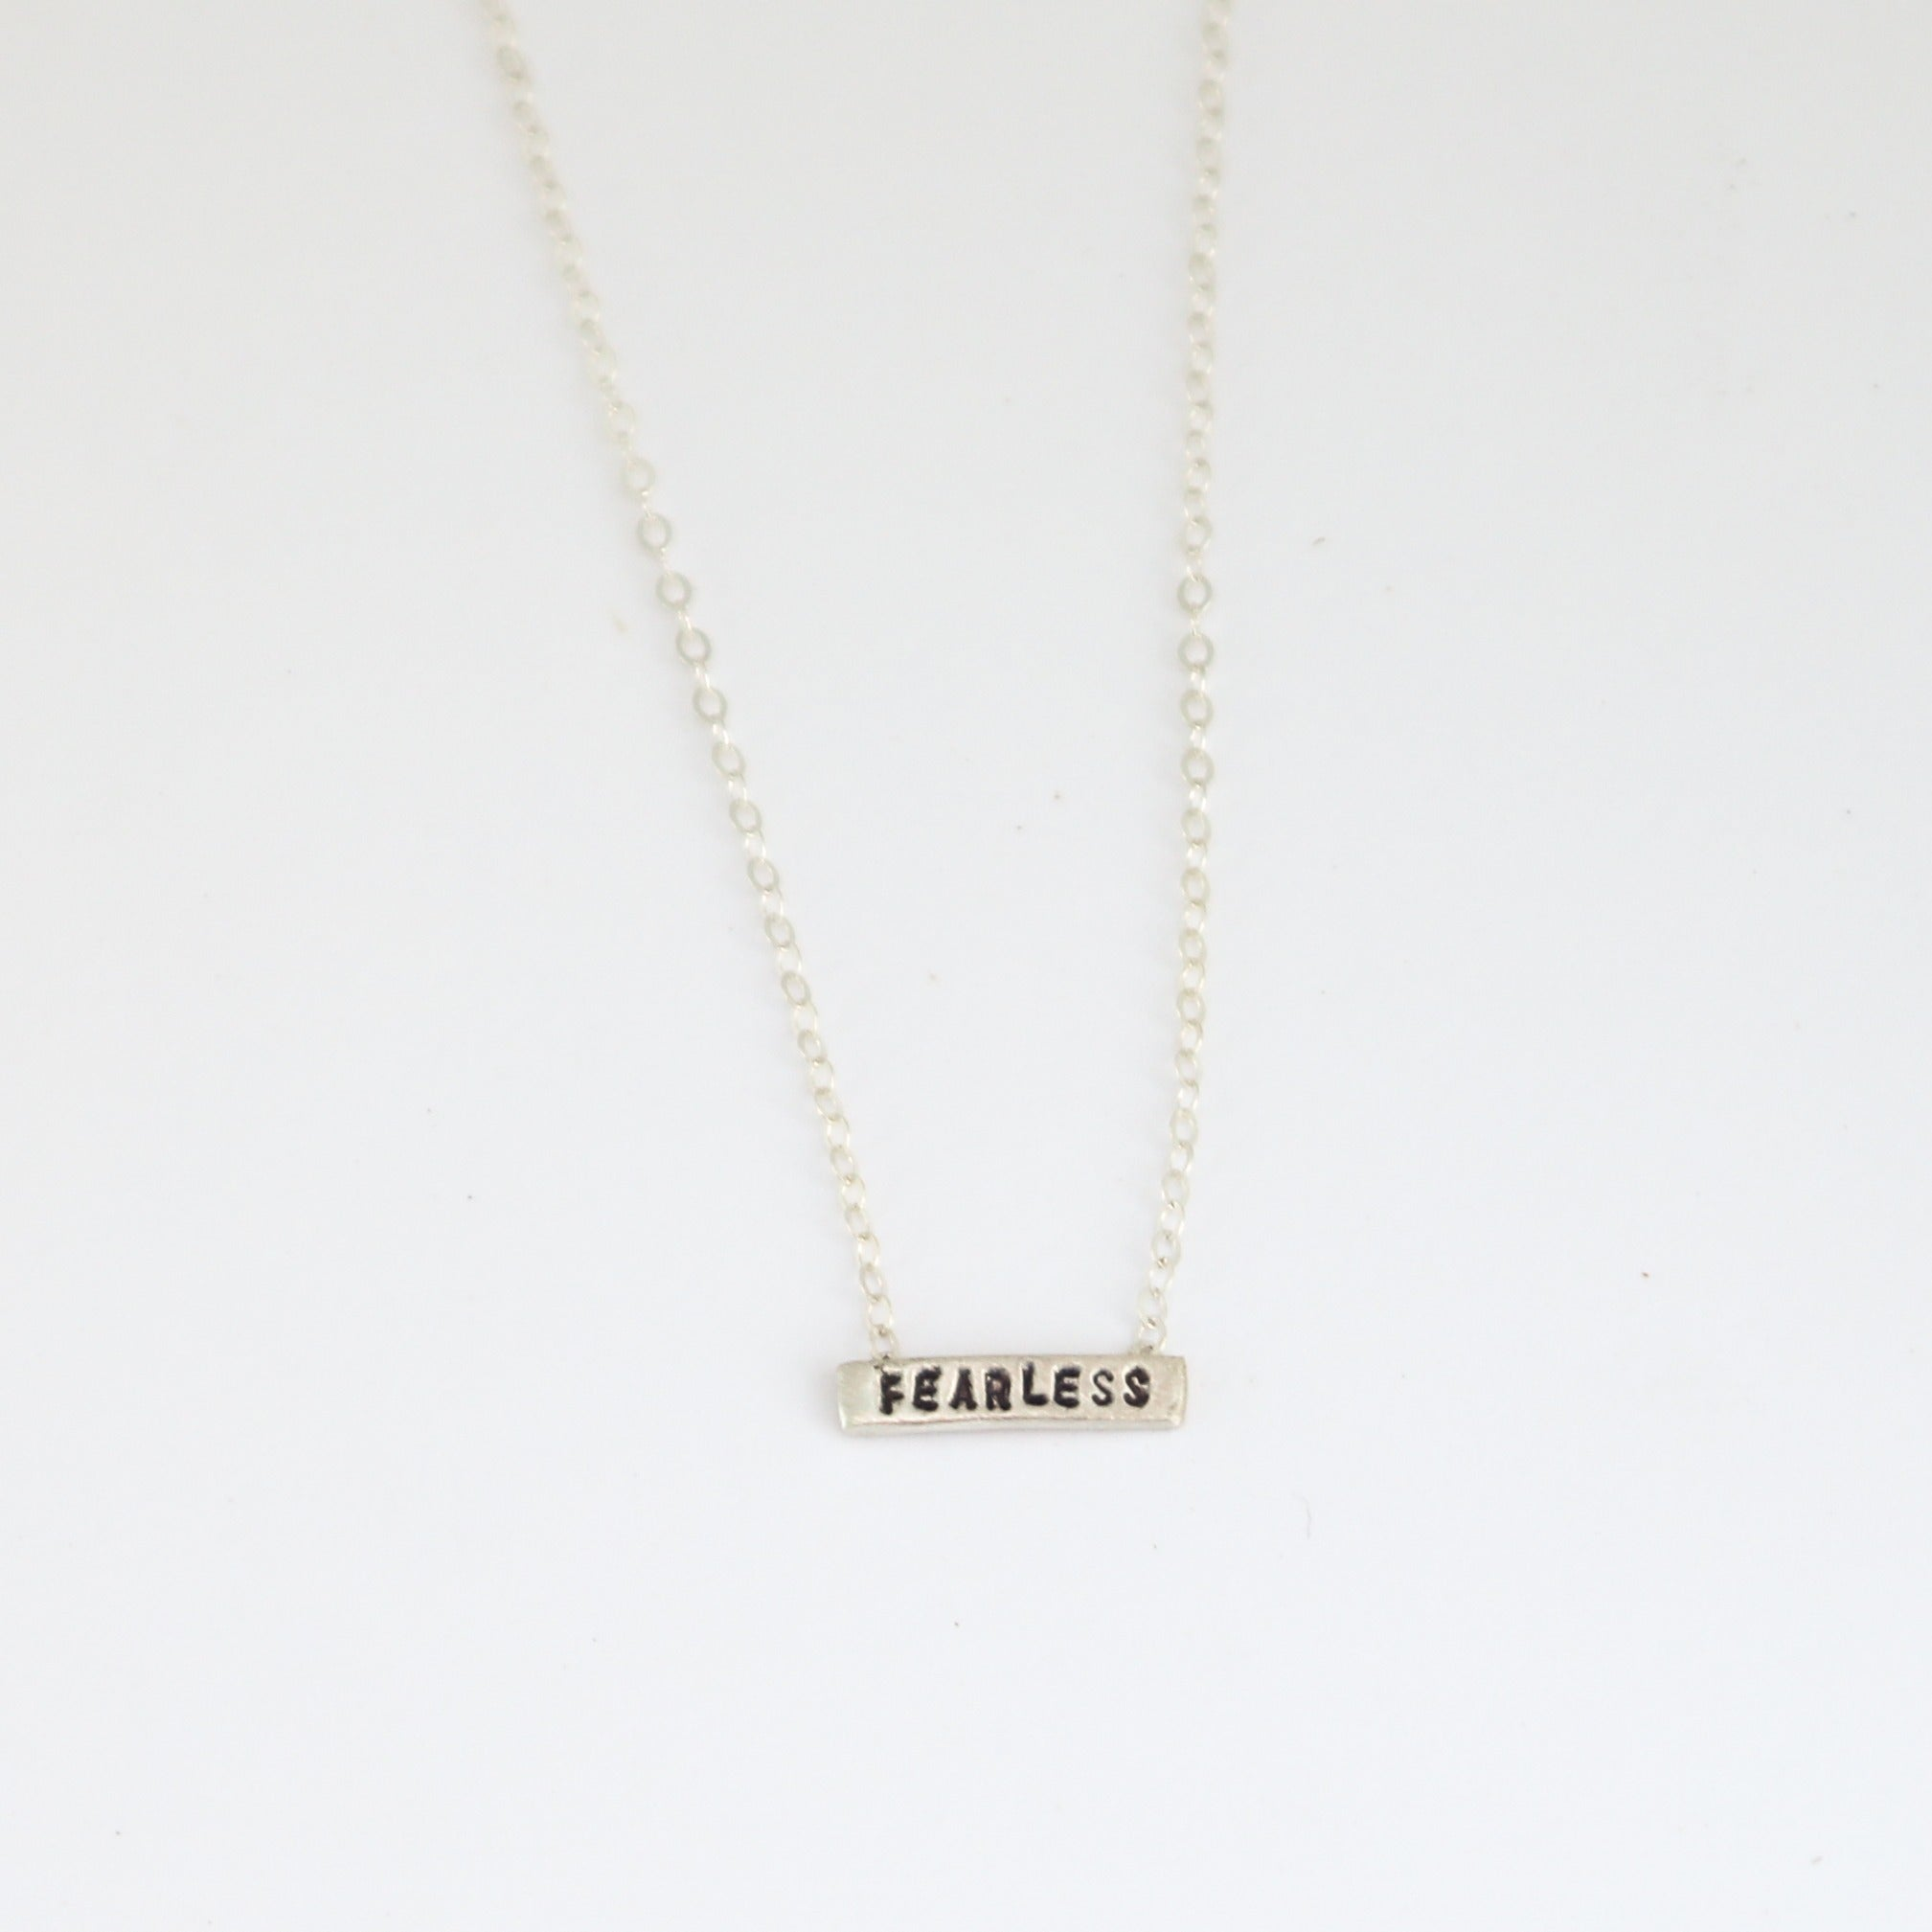 Fearless Tiny Necklace